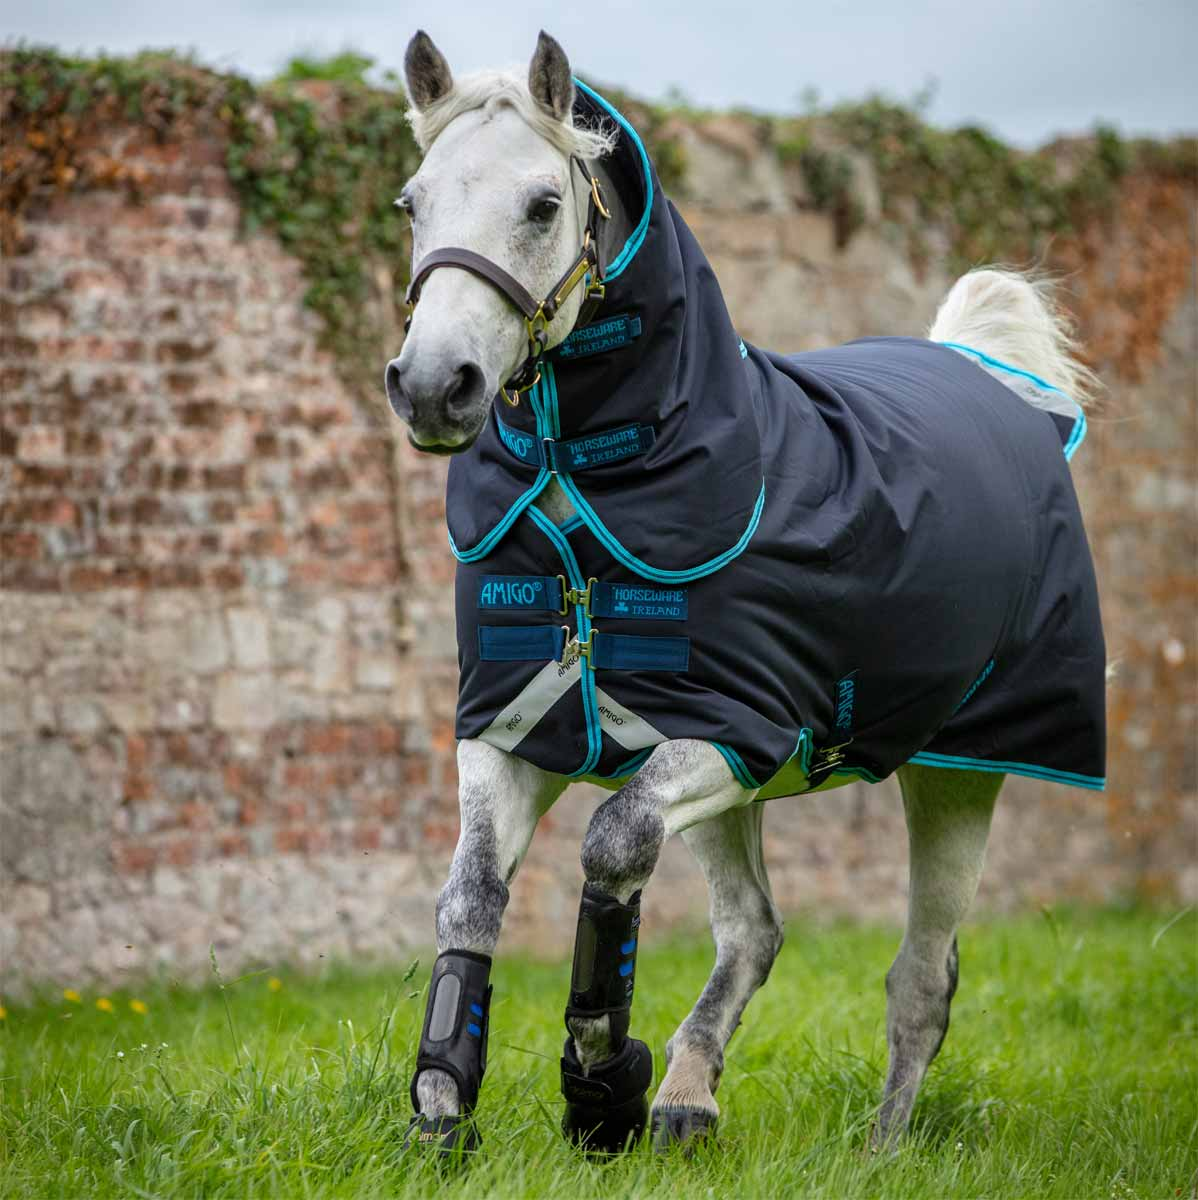 Mustang Horse Turnout Rug Medium Weight Two Tone Breathable Waterproof 250g Fill